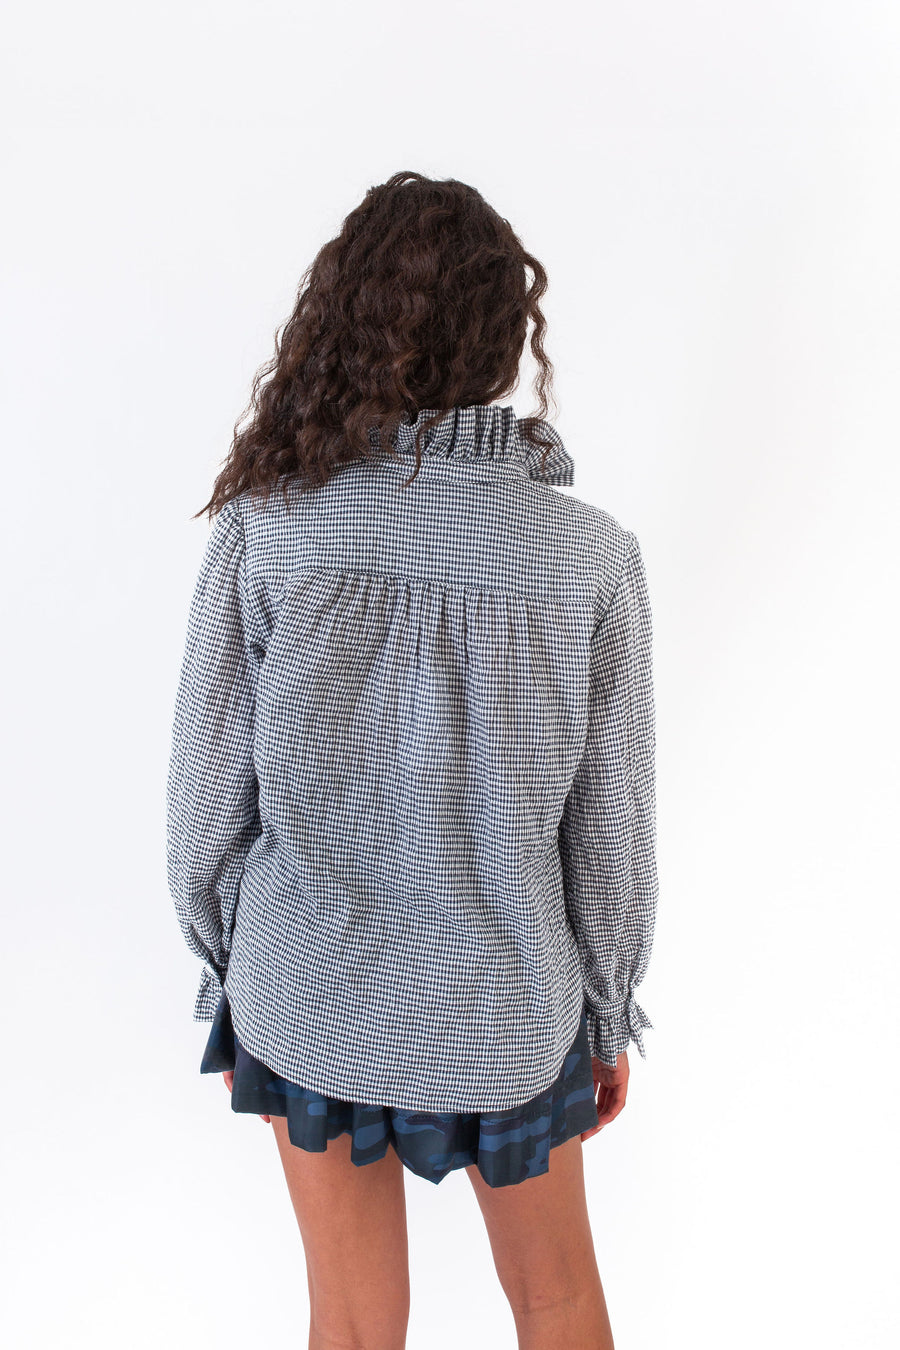 PHOEBE TOP NAVY CHECK *LIMITED*EDITION*